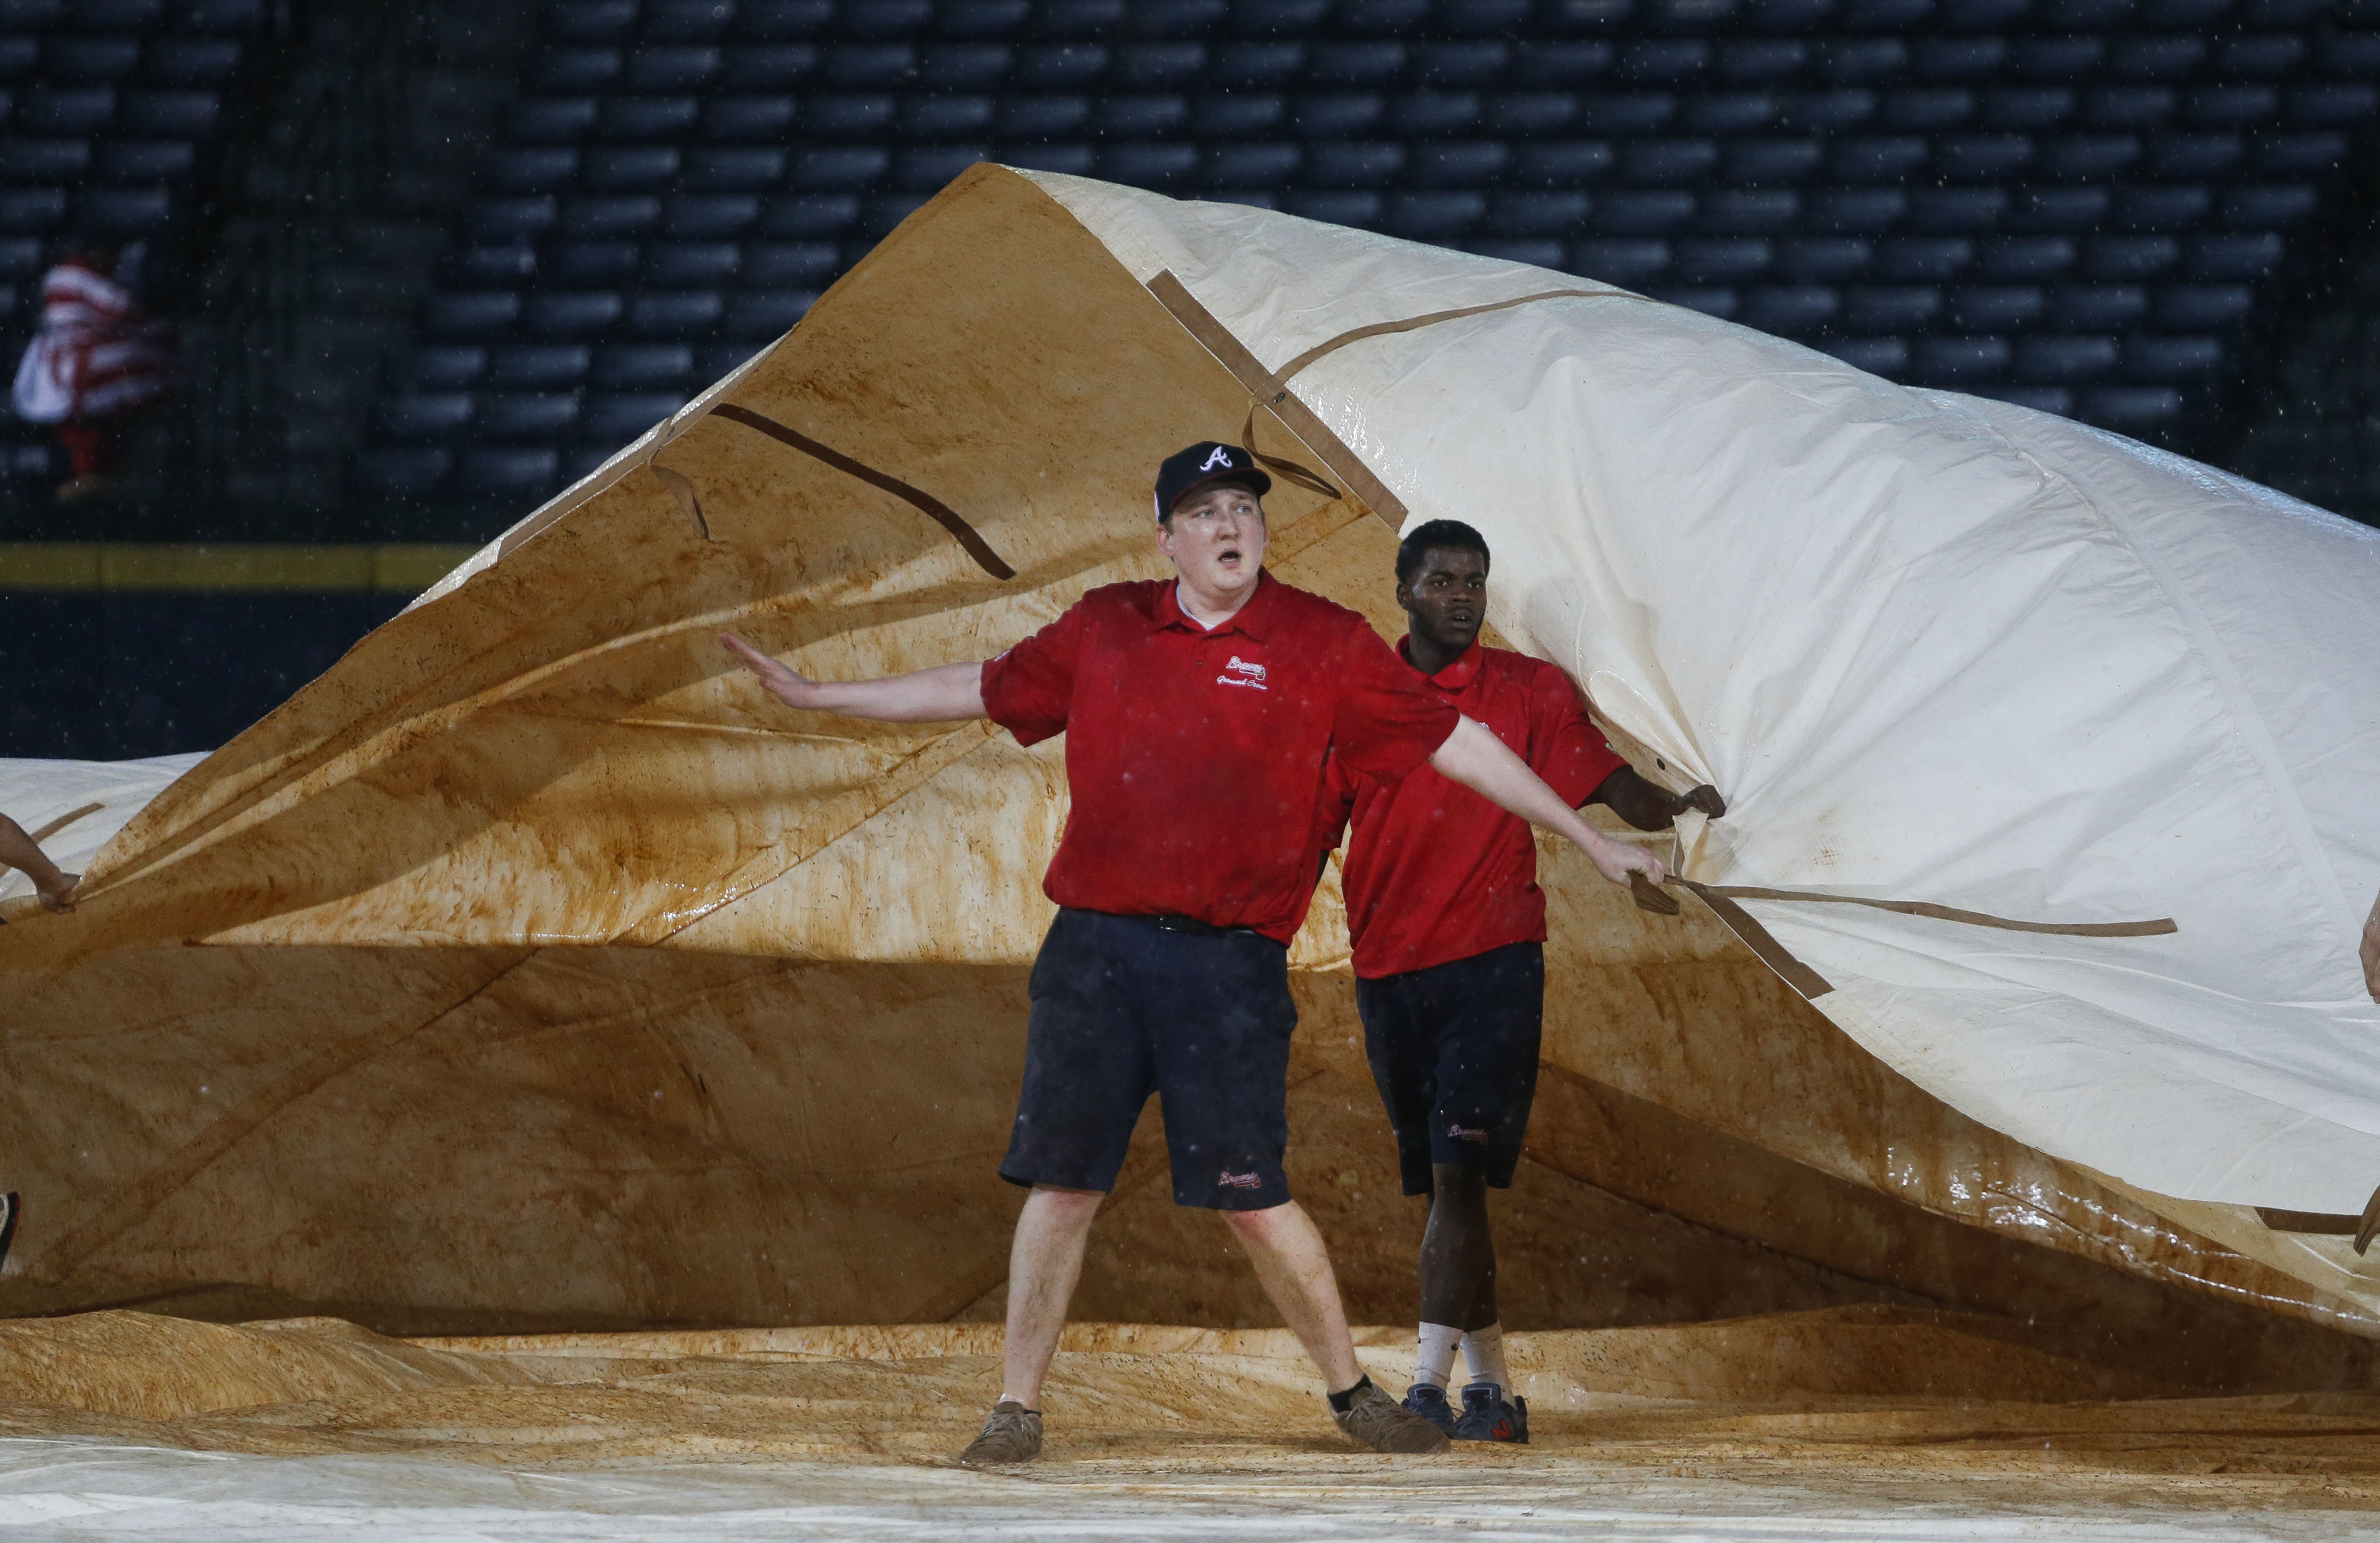 Members of the Atlanta Braves grounds crew work to cover the infield during a rain delay in the seventh inning of the Braves' baseball game against the Milwaukee Brewers on Thursday, May 26, 2016, in Atlanta. (AP Photo/John Bazemore)